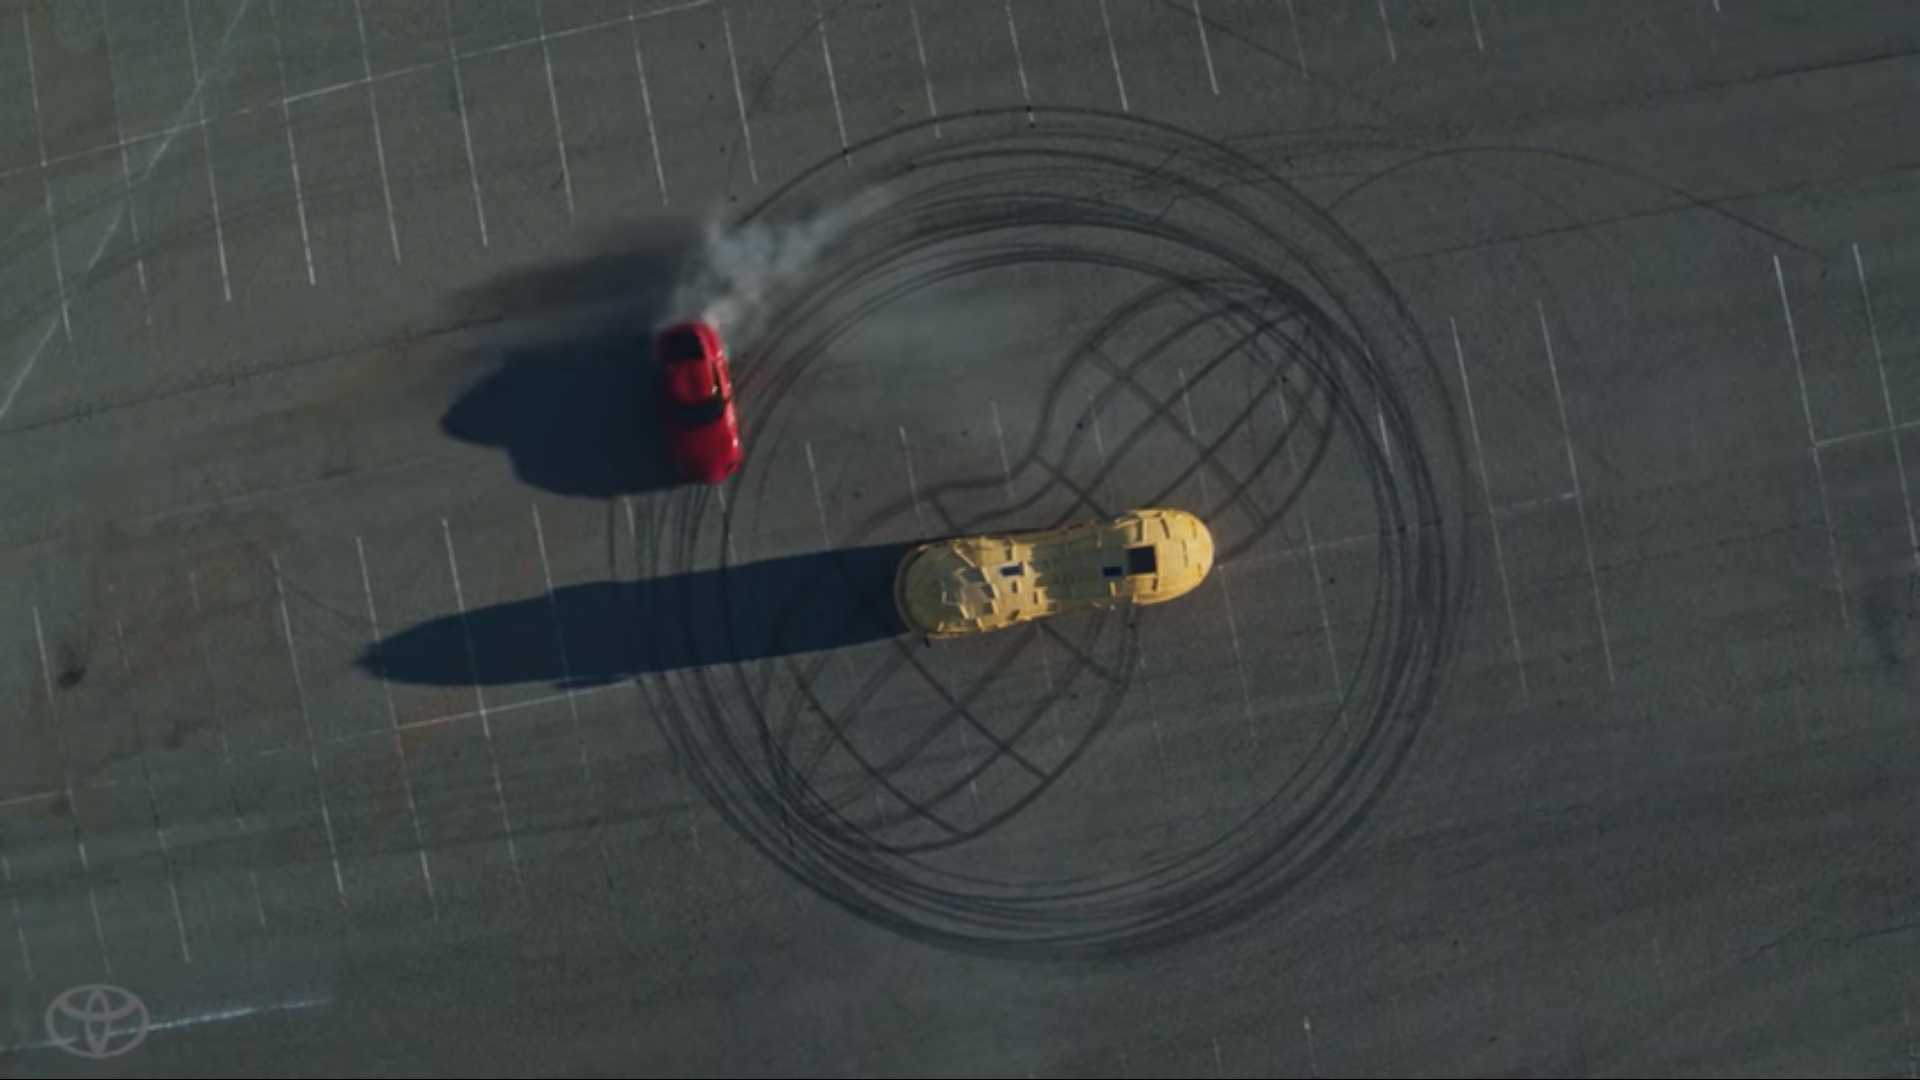 Toyota Supra Takes On Mr. Peanut In Absolutely Nuts Race